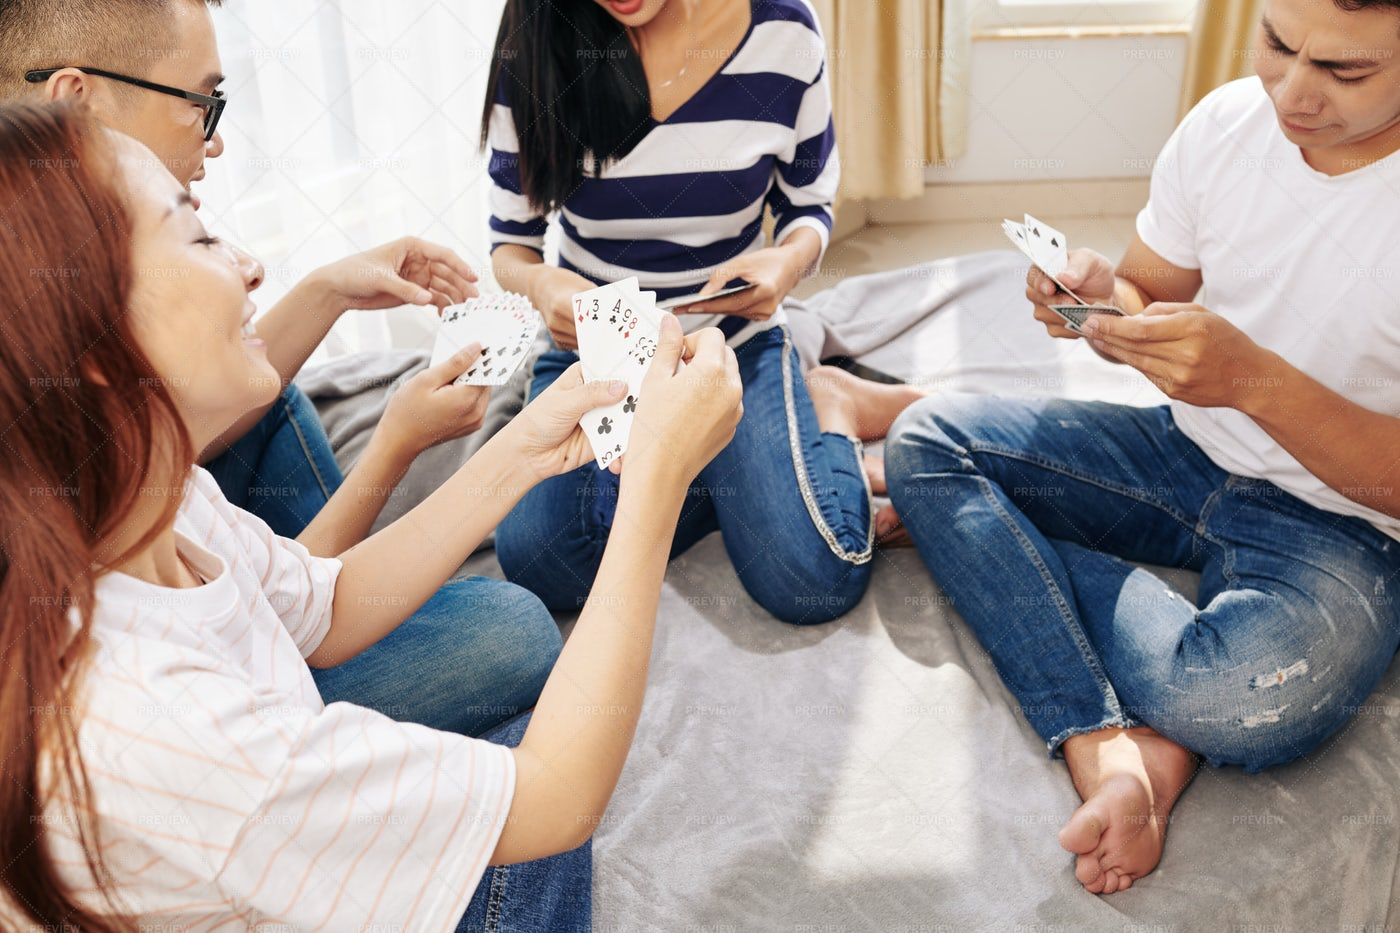 Playing Cards With Friends: Stock Photos